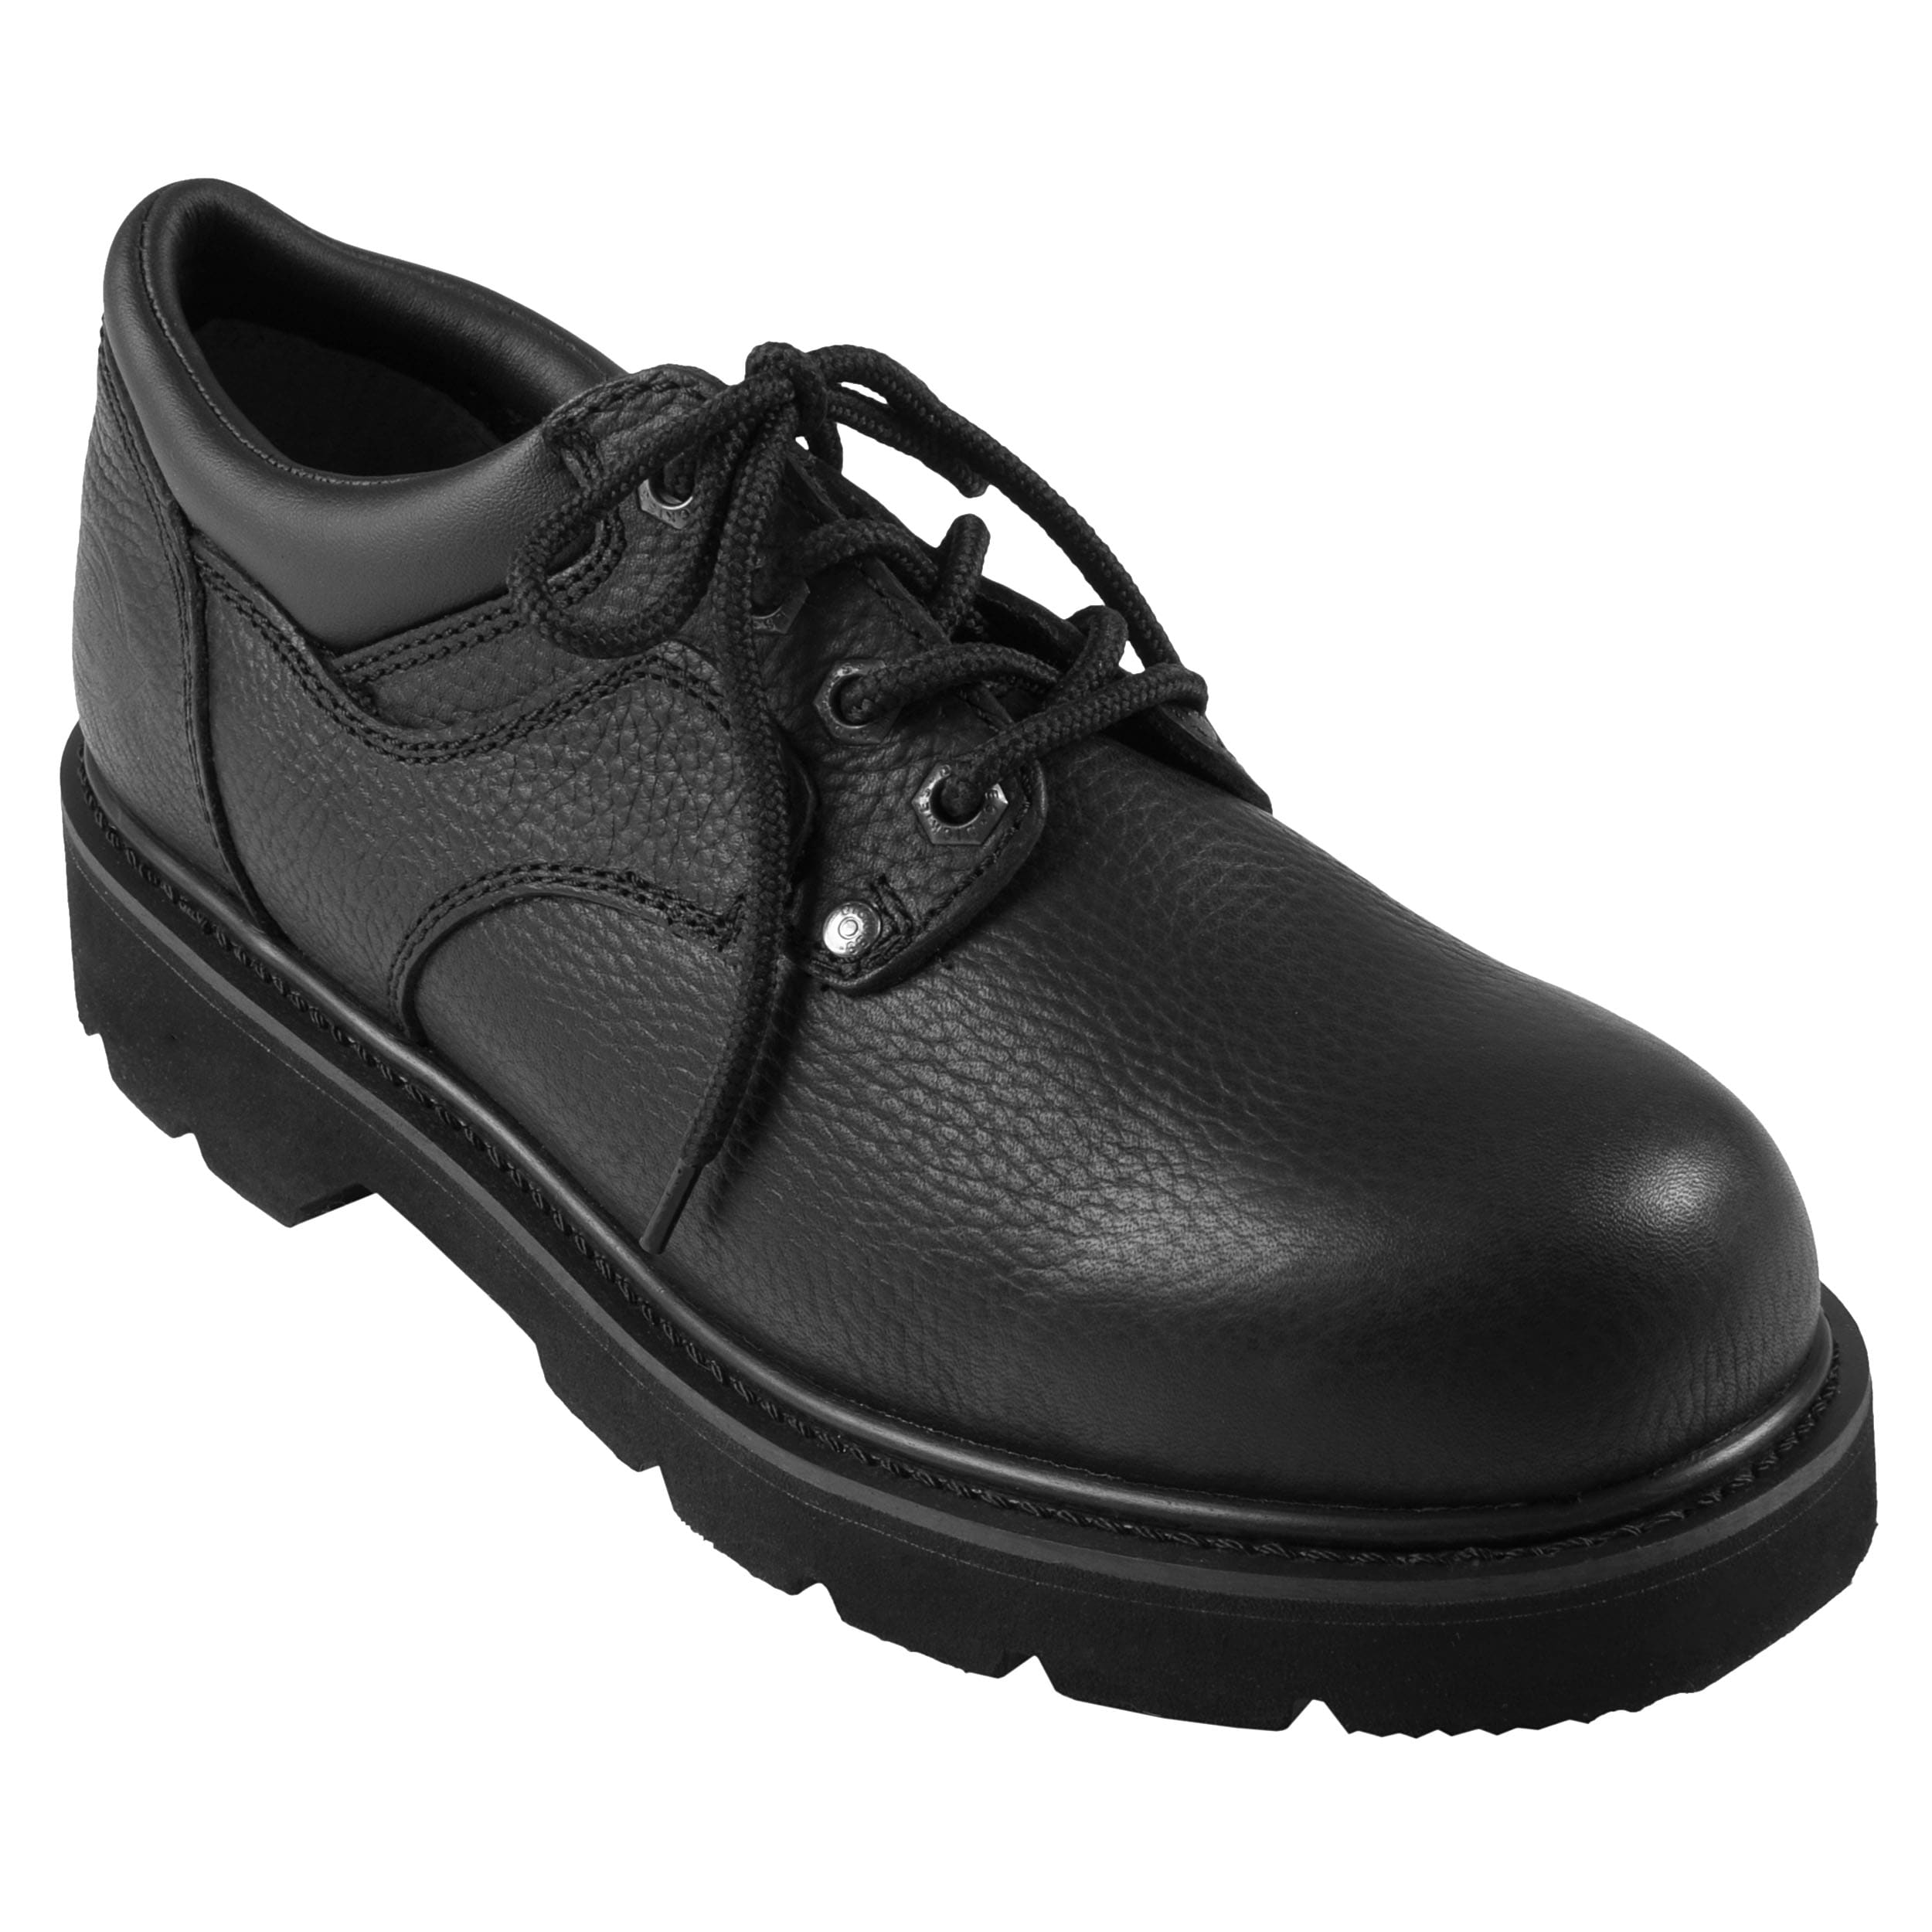 Dickies Men S Wide Oxford Lug Sole Genuine Leather Lace Up